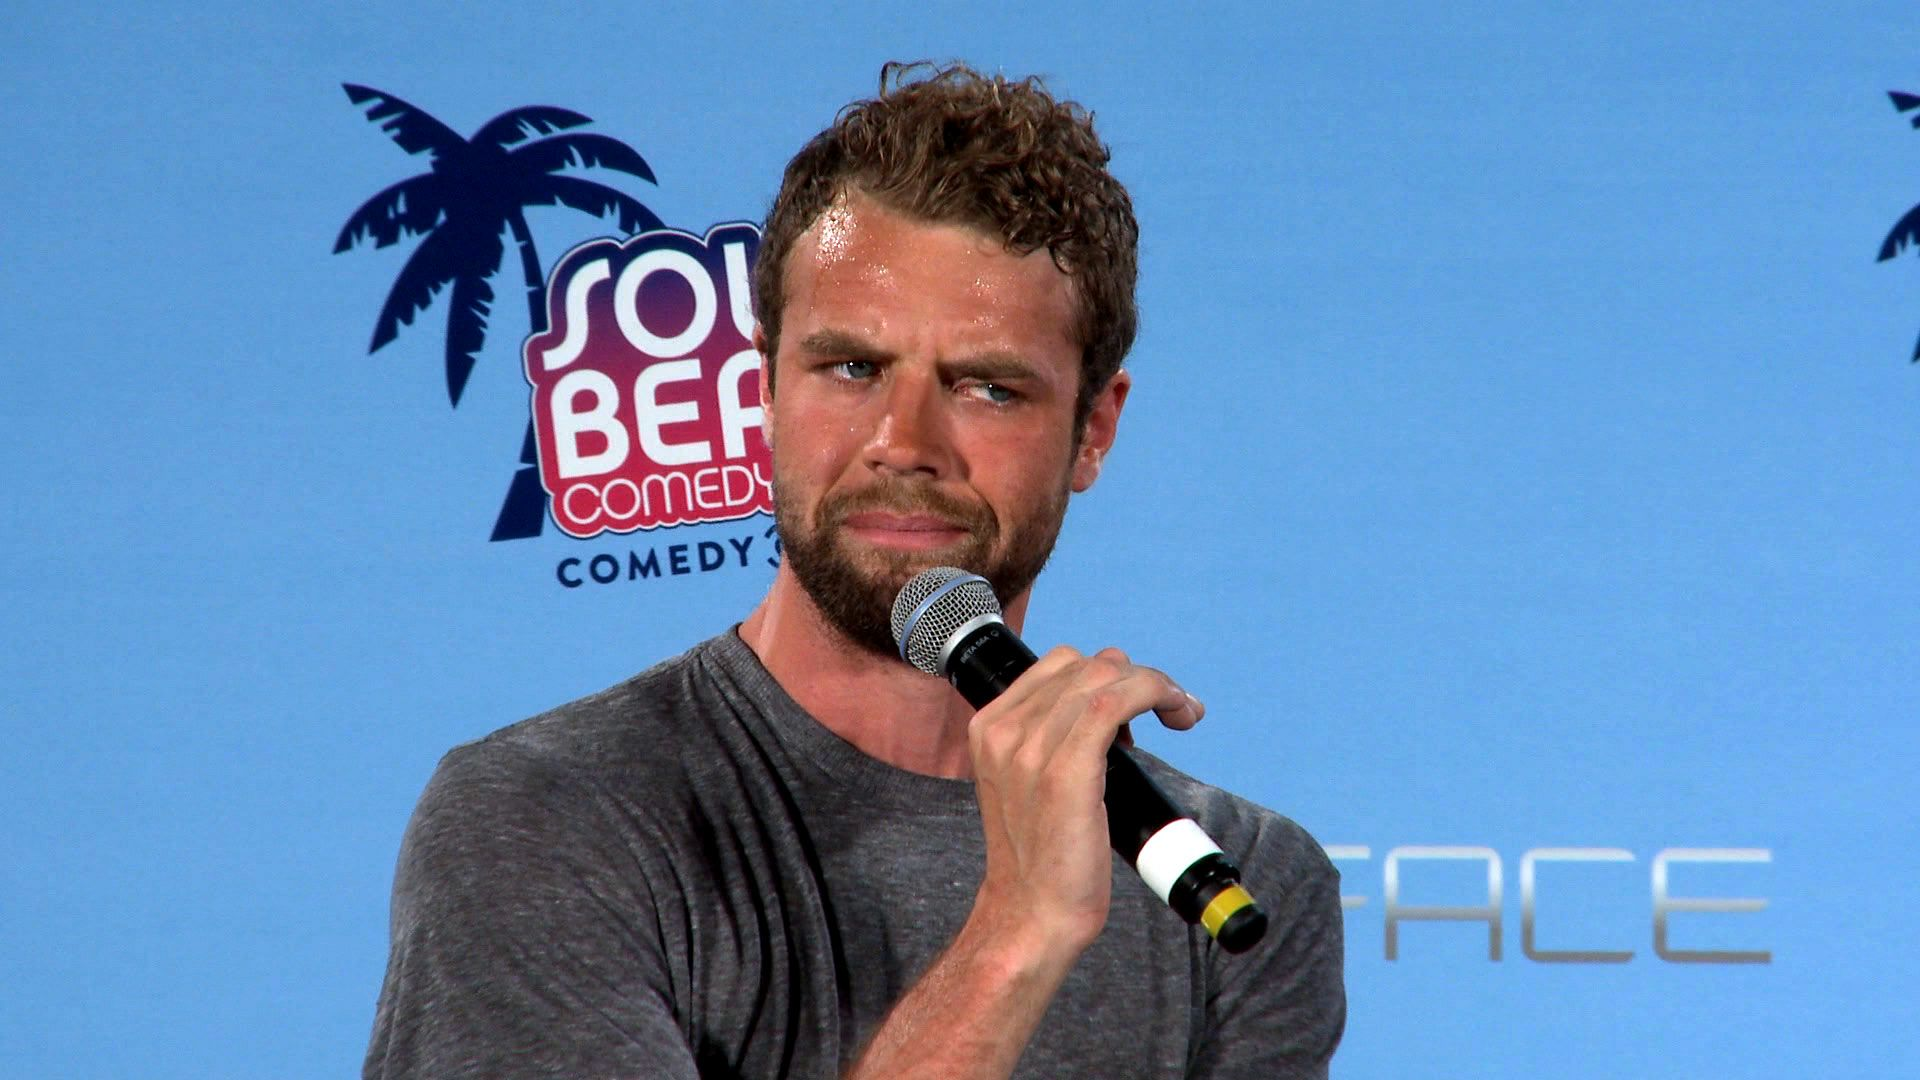 South Beach Comedy Festival: Brooks Wheelan - Owning a Sword